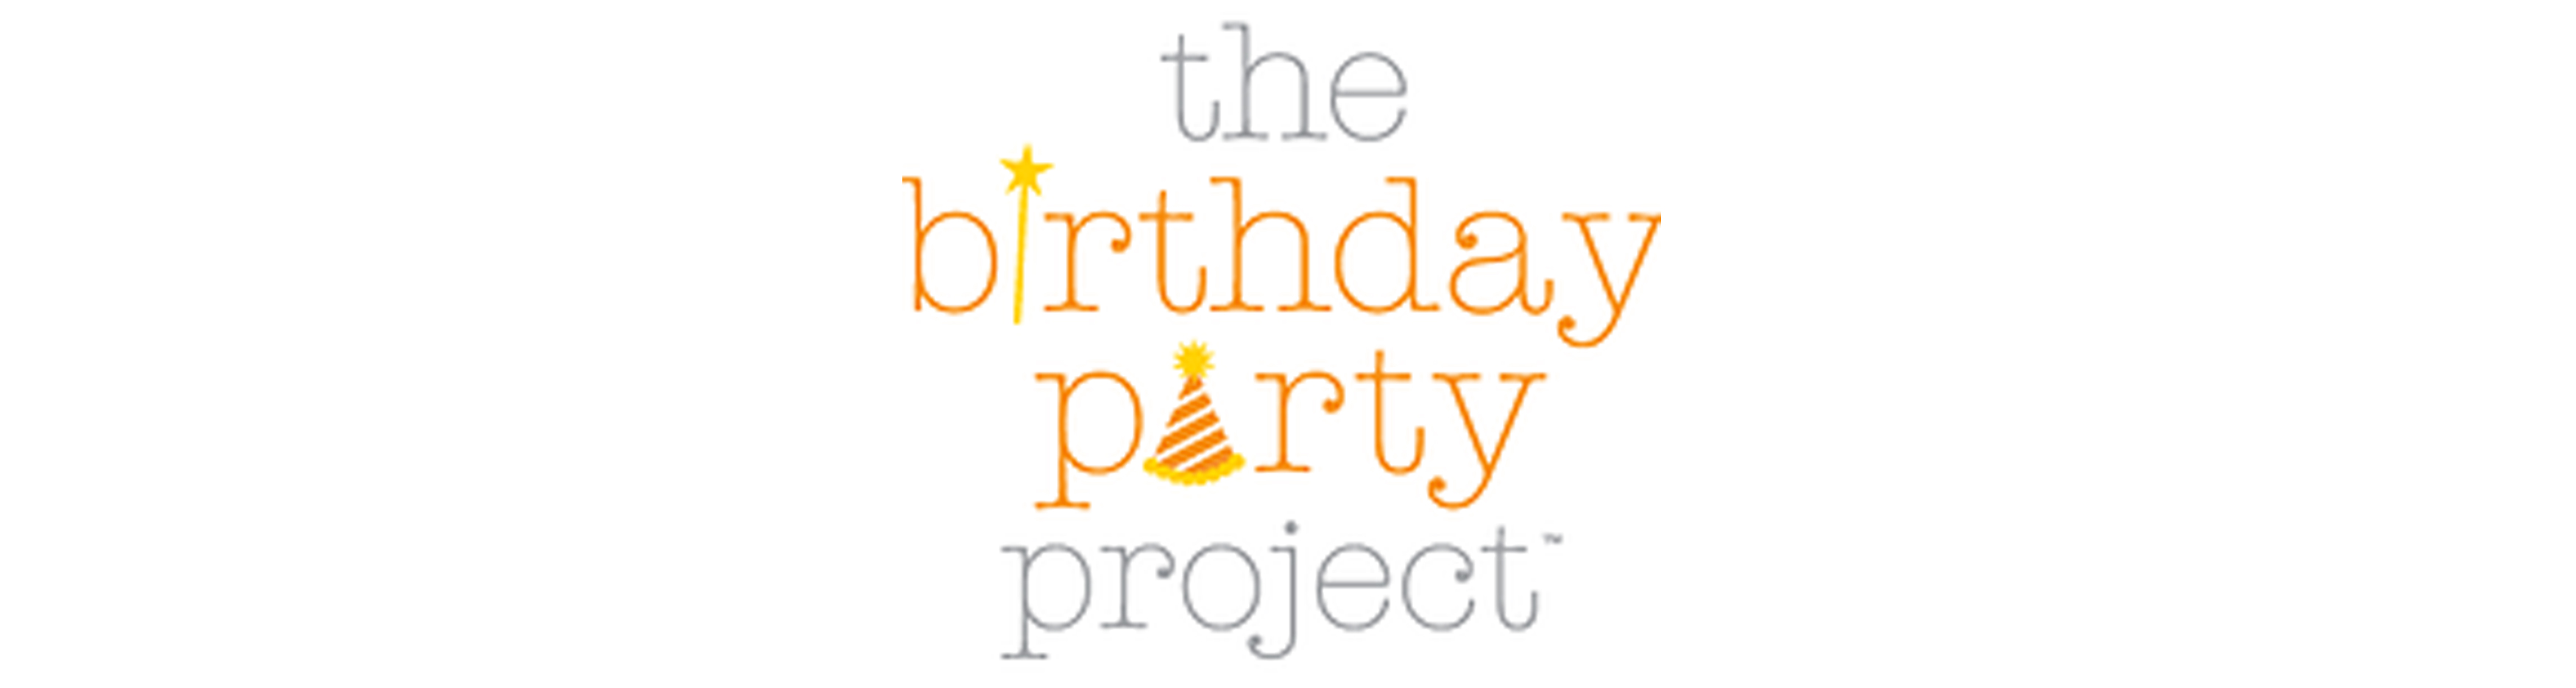 The Birthday Party Project >> The Birthday Party Project Las Vegas Wedding Planner Las Vegas